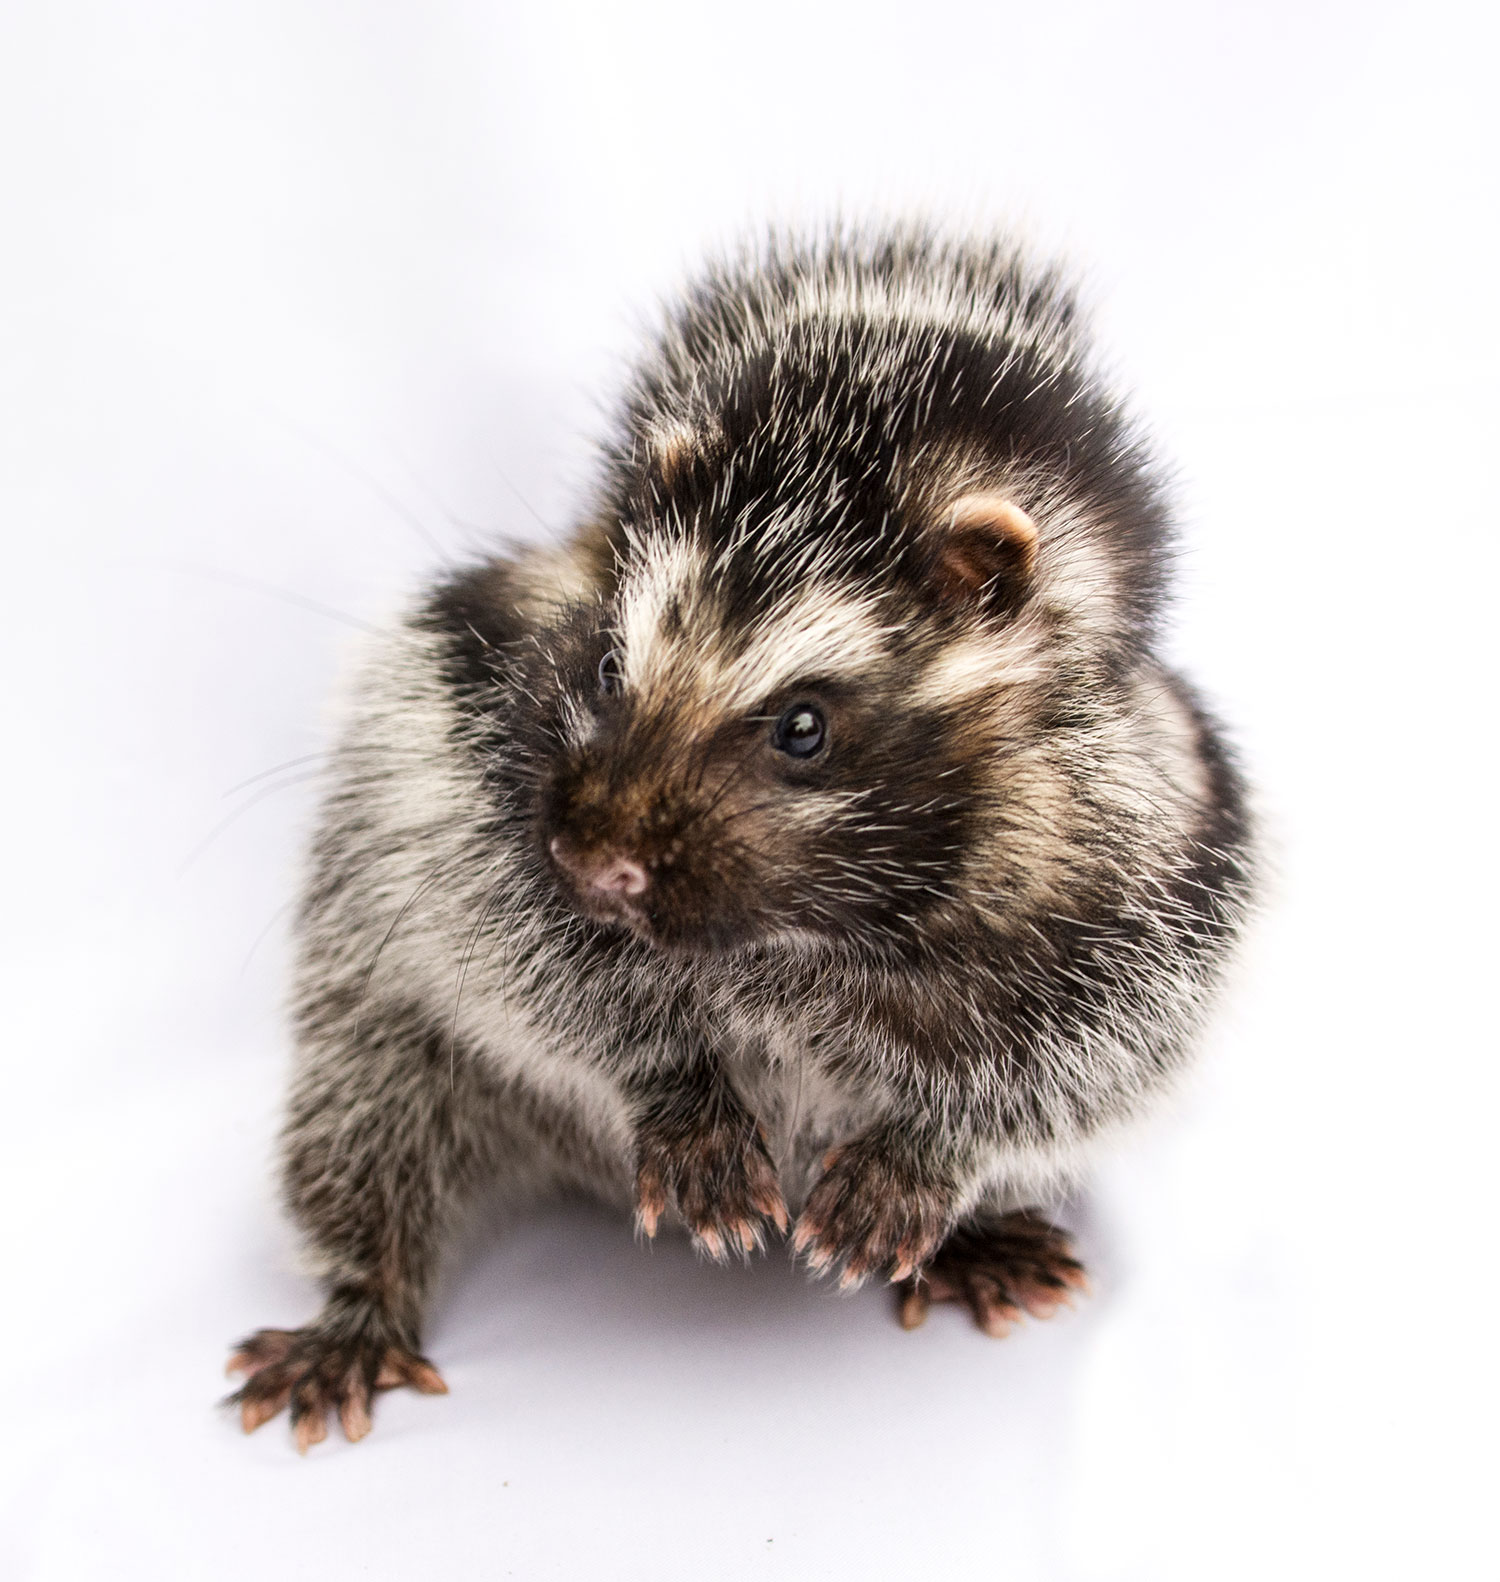 An African crested rat sits on its haunches, looking left, against a white background. The rabbit-sized rodent's fur is various shades or brown and gray, with dark stripts that line its flanks from leg to its face. It's head is black on top, with white fur that look like eye brows, and dark fur lines its eyes and snout.